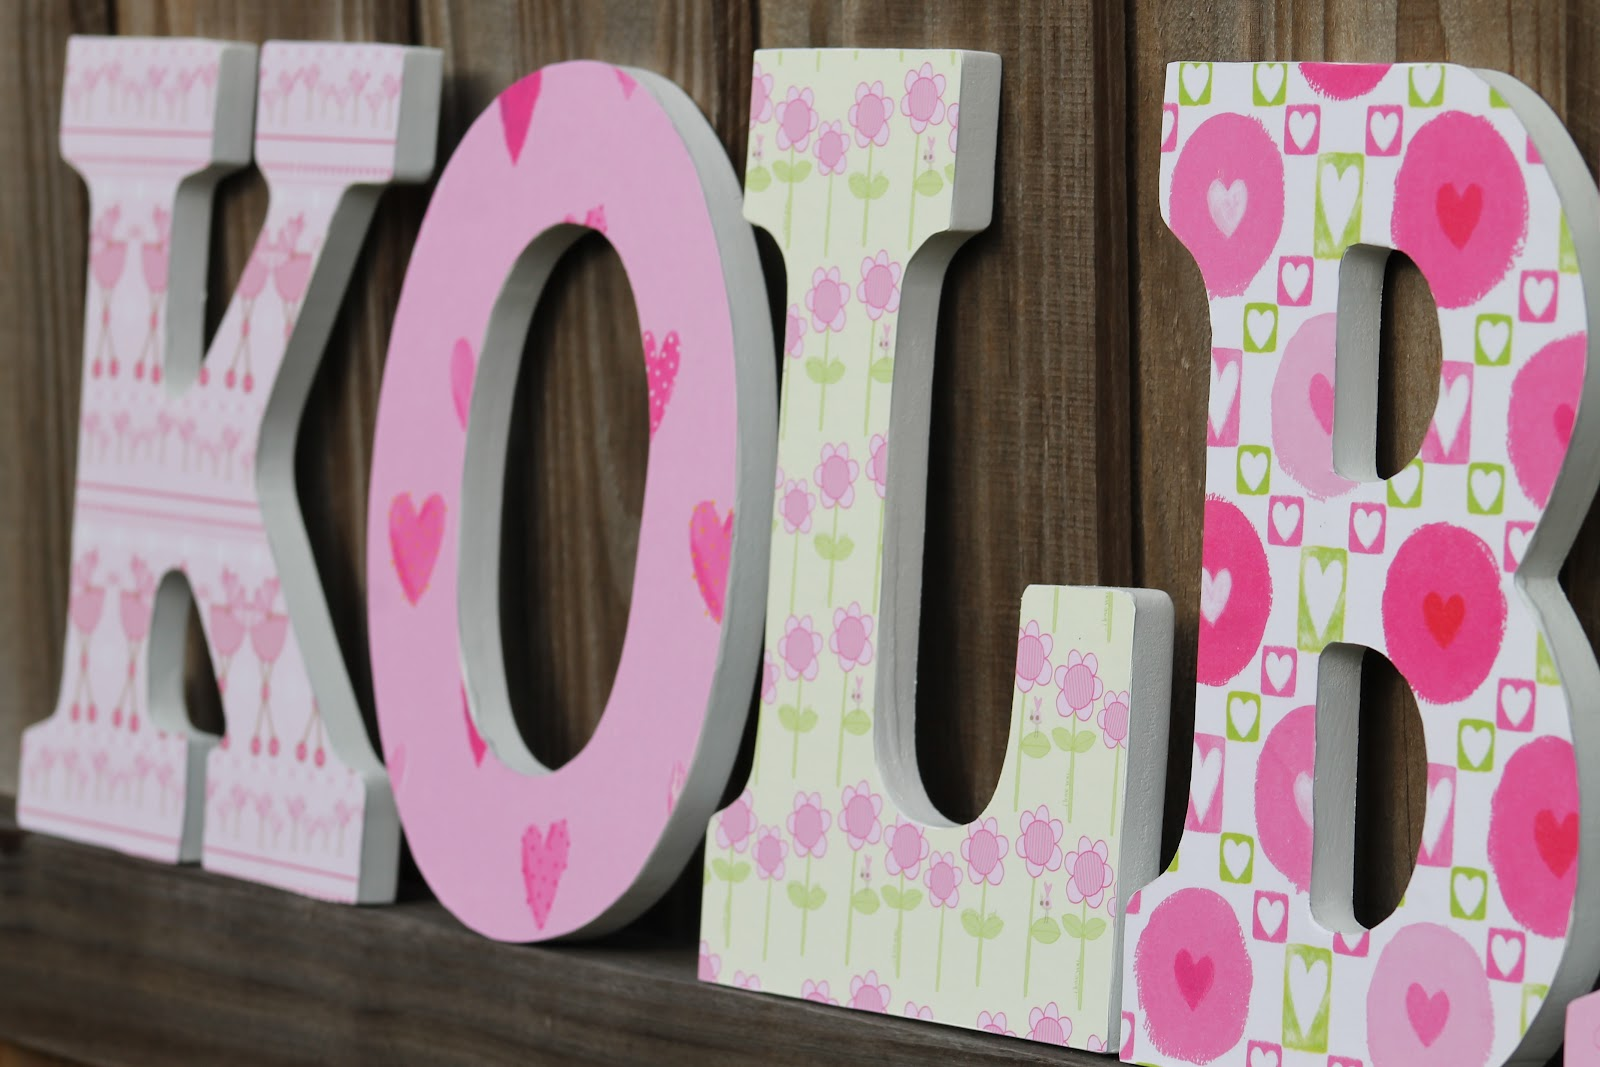 Desperate Craftwives: Nursery Wall Letters